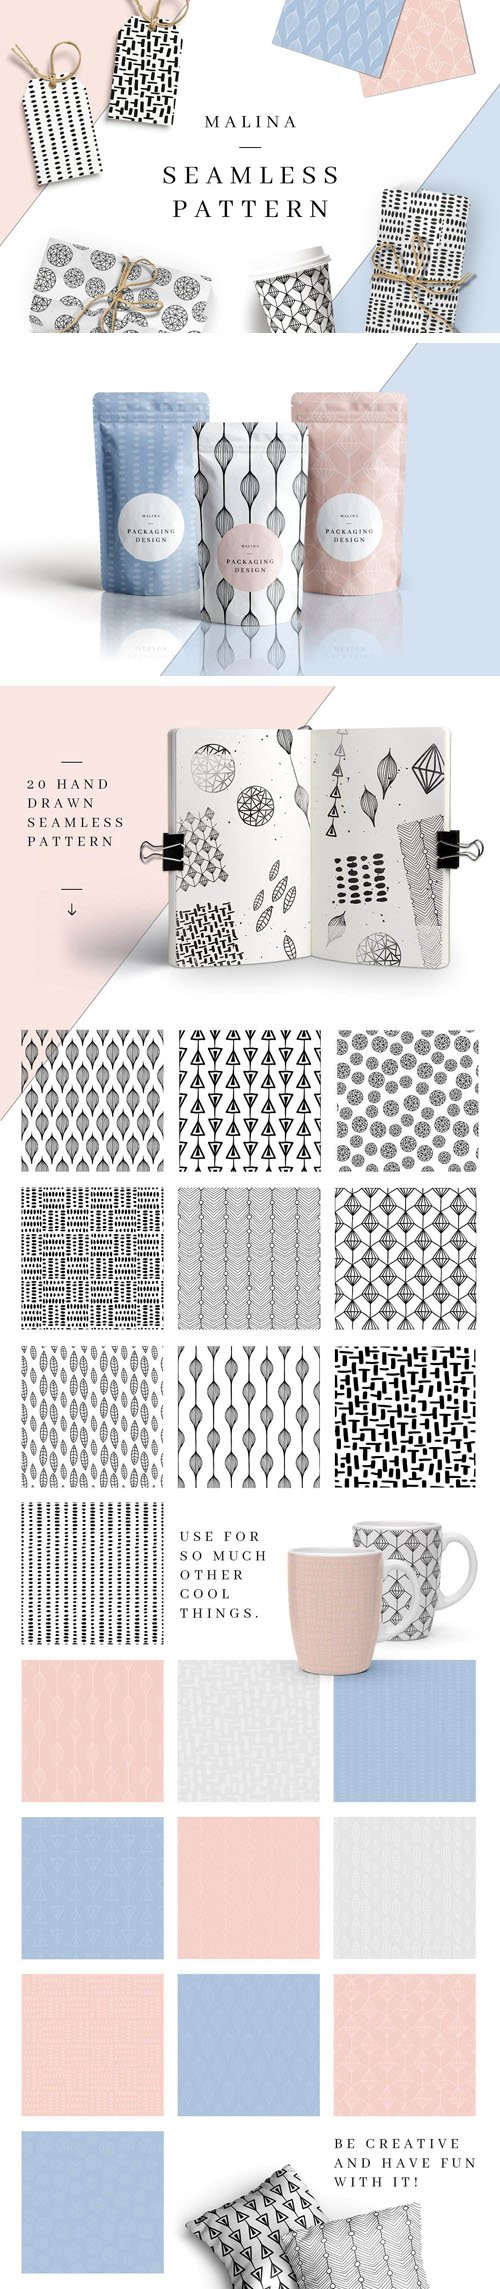 20 Hand-Drawn Seamless Patterns in Vector